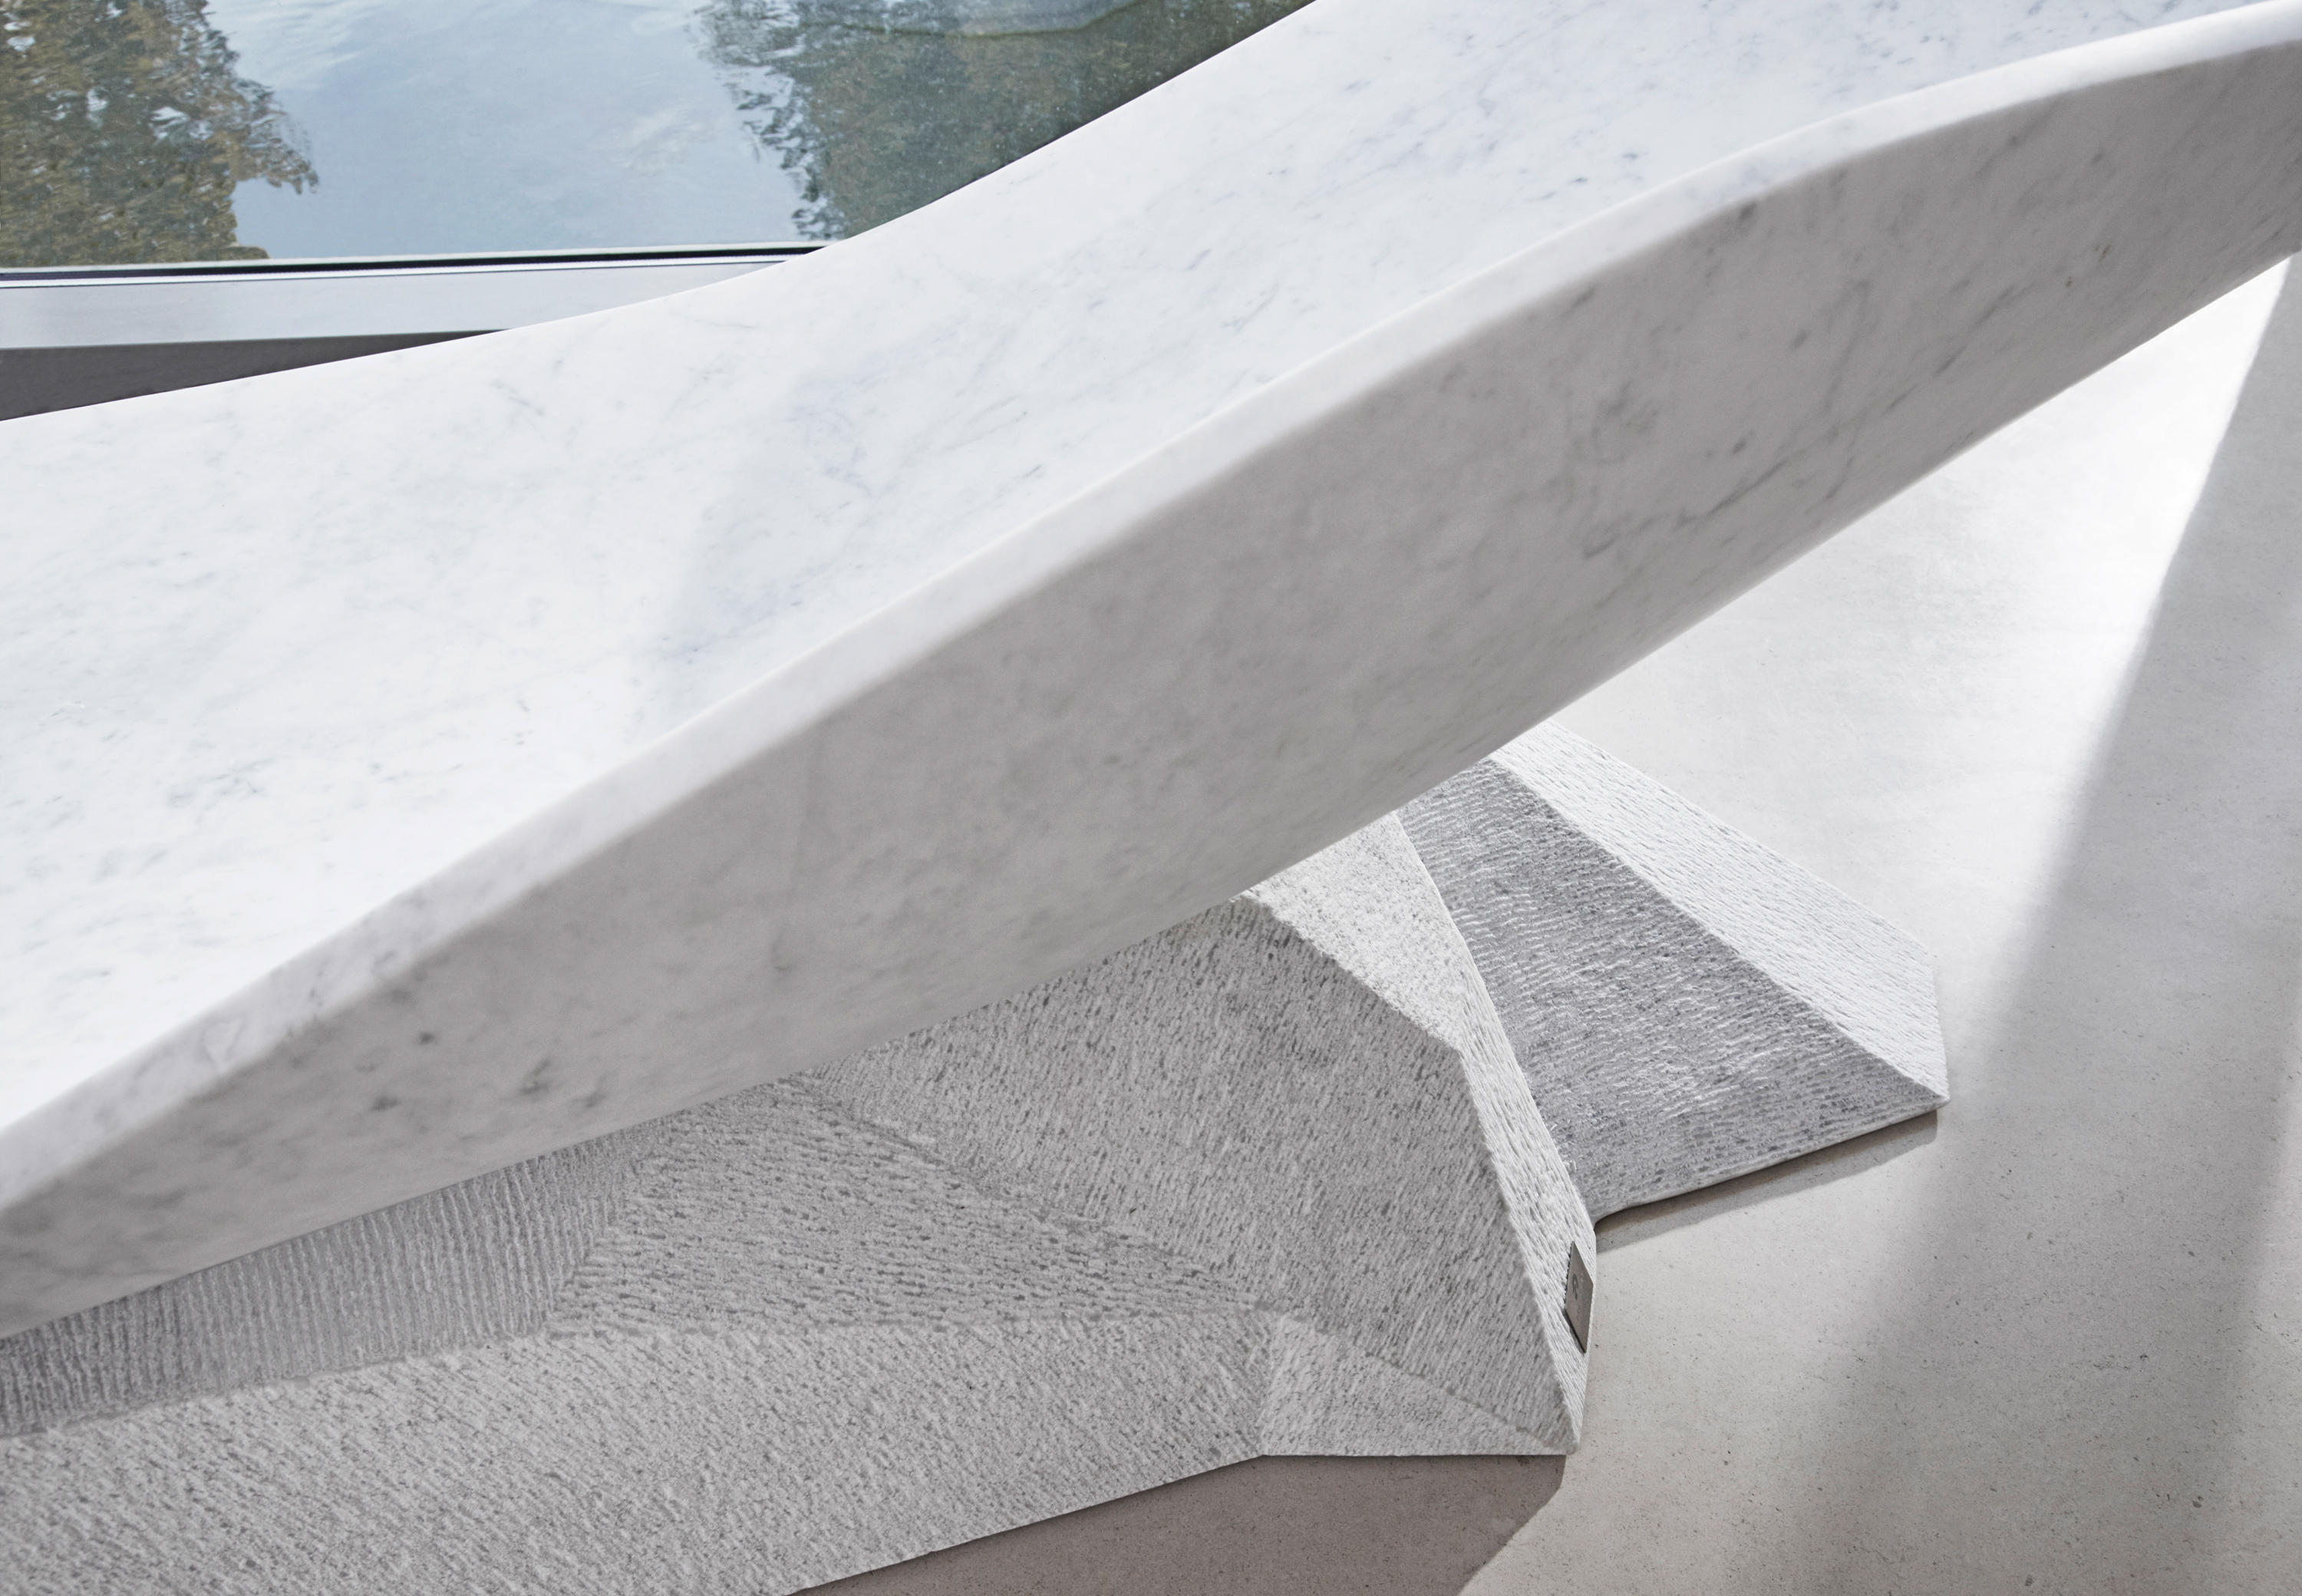 Marble Wing Chaise by Hadi Teherani for Draenert